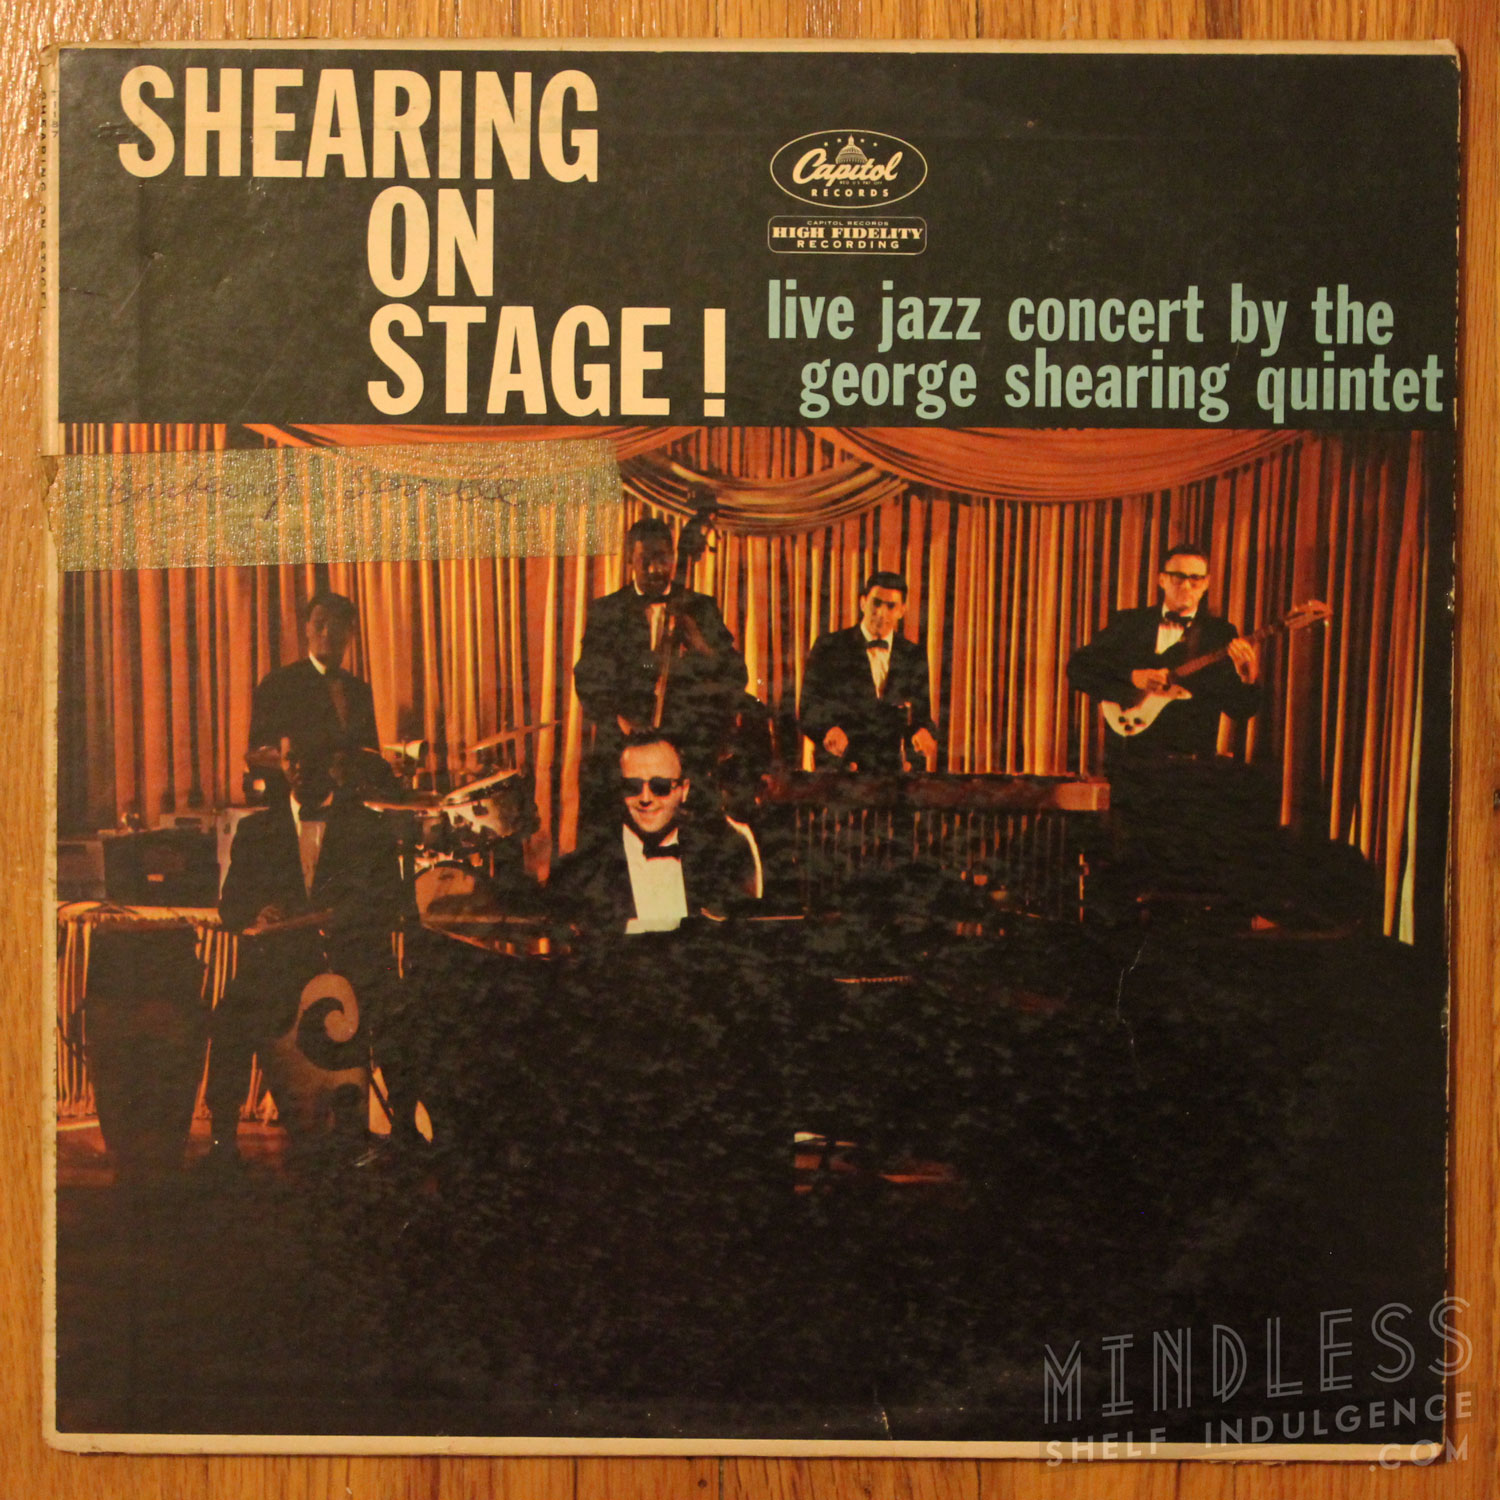 Shearing on Stage LP